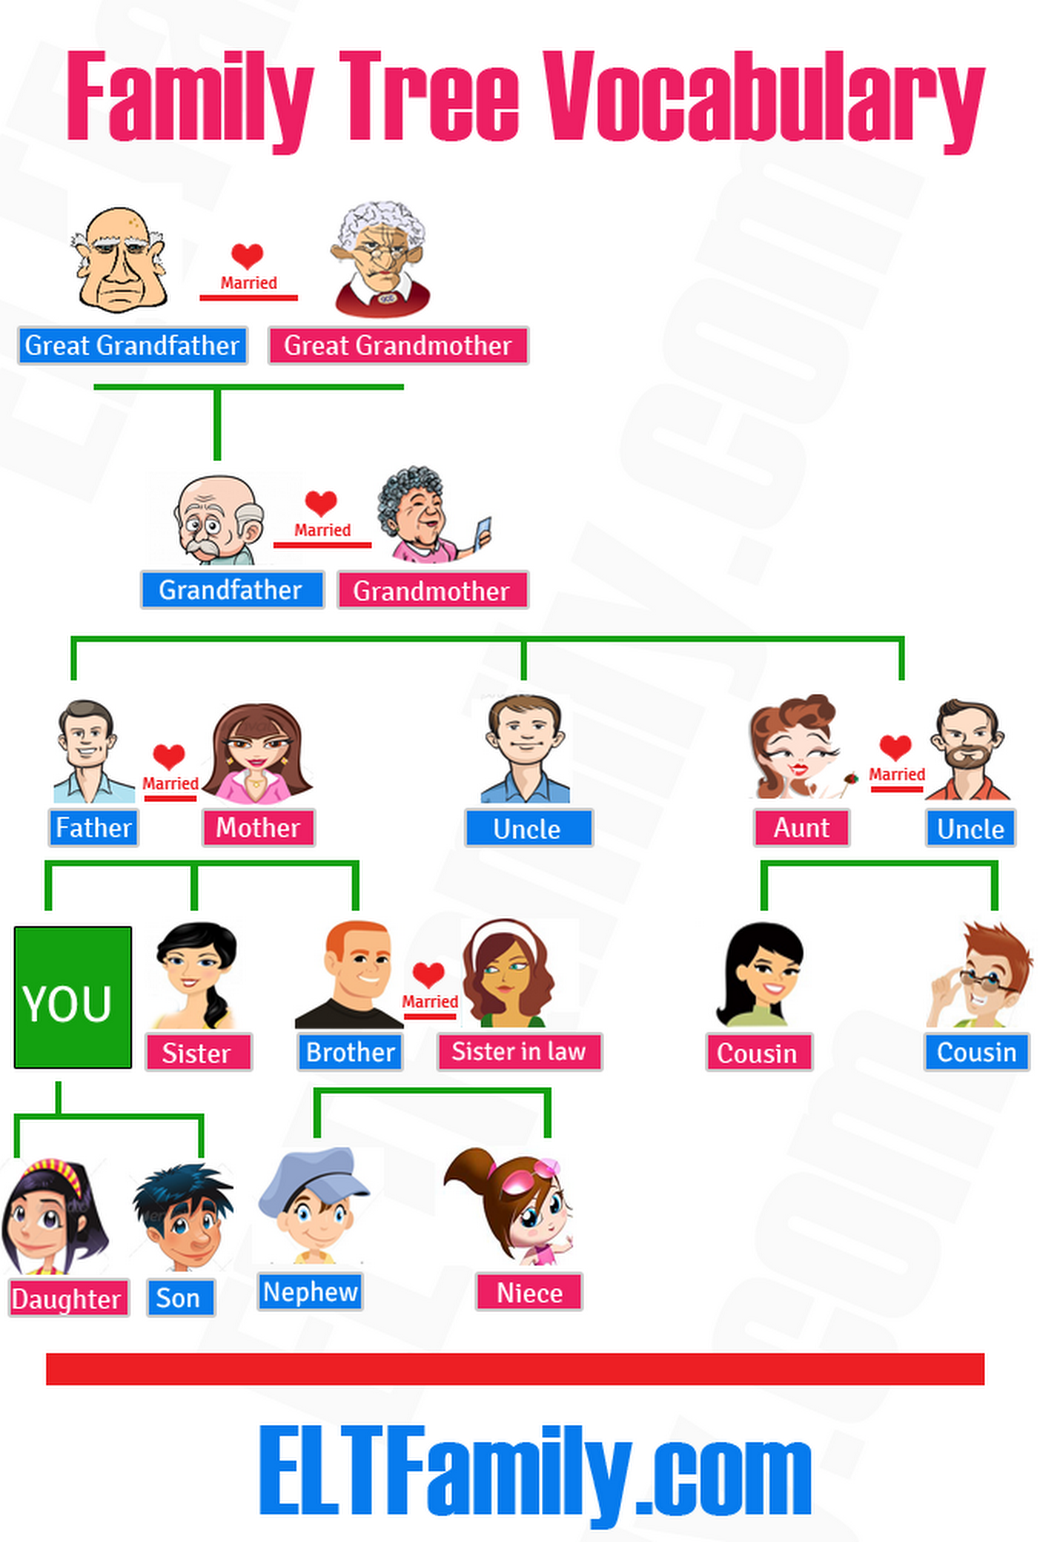 Family Tree Vocabulary